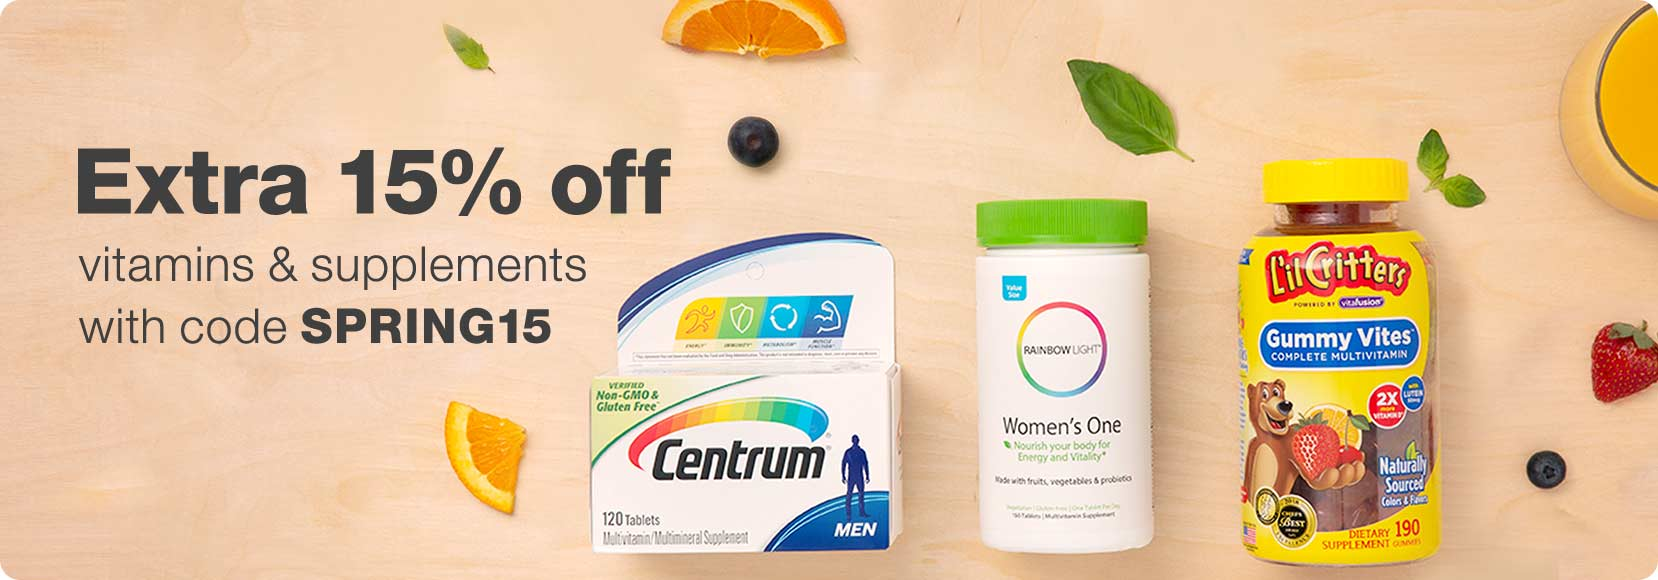 Extra 15% off vitamins & supplements with code SPRING15.